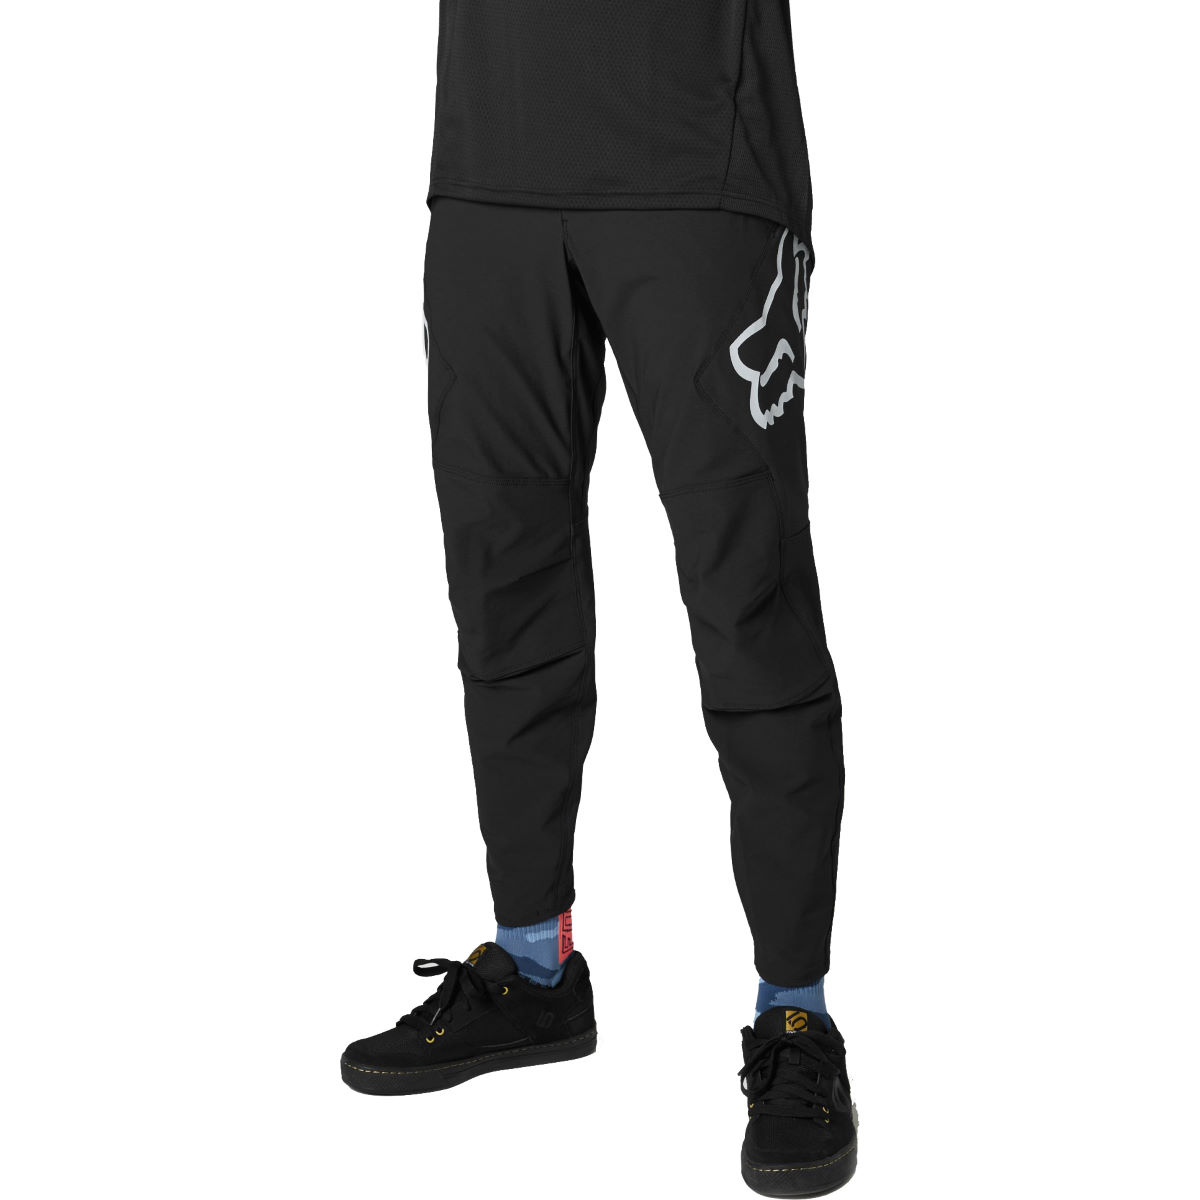 Fox Racing Defend Cycling Trousers Rs - 32 Black  Trousers